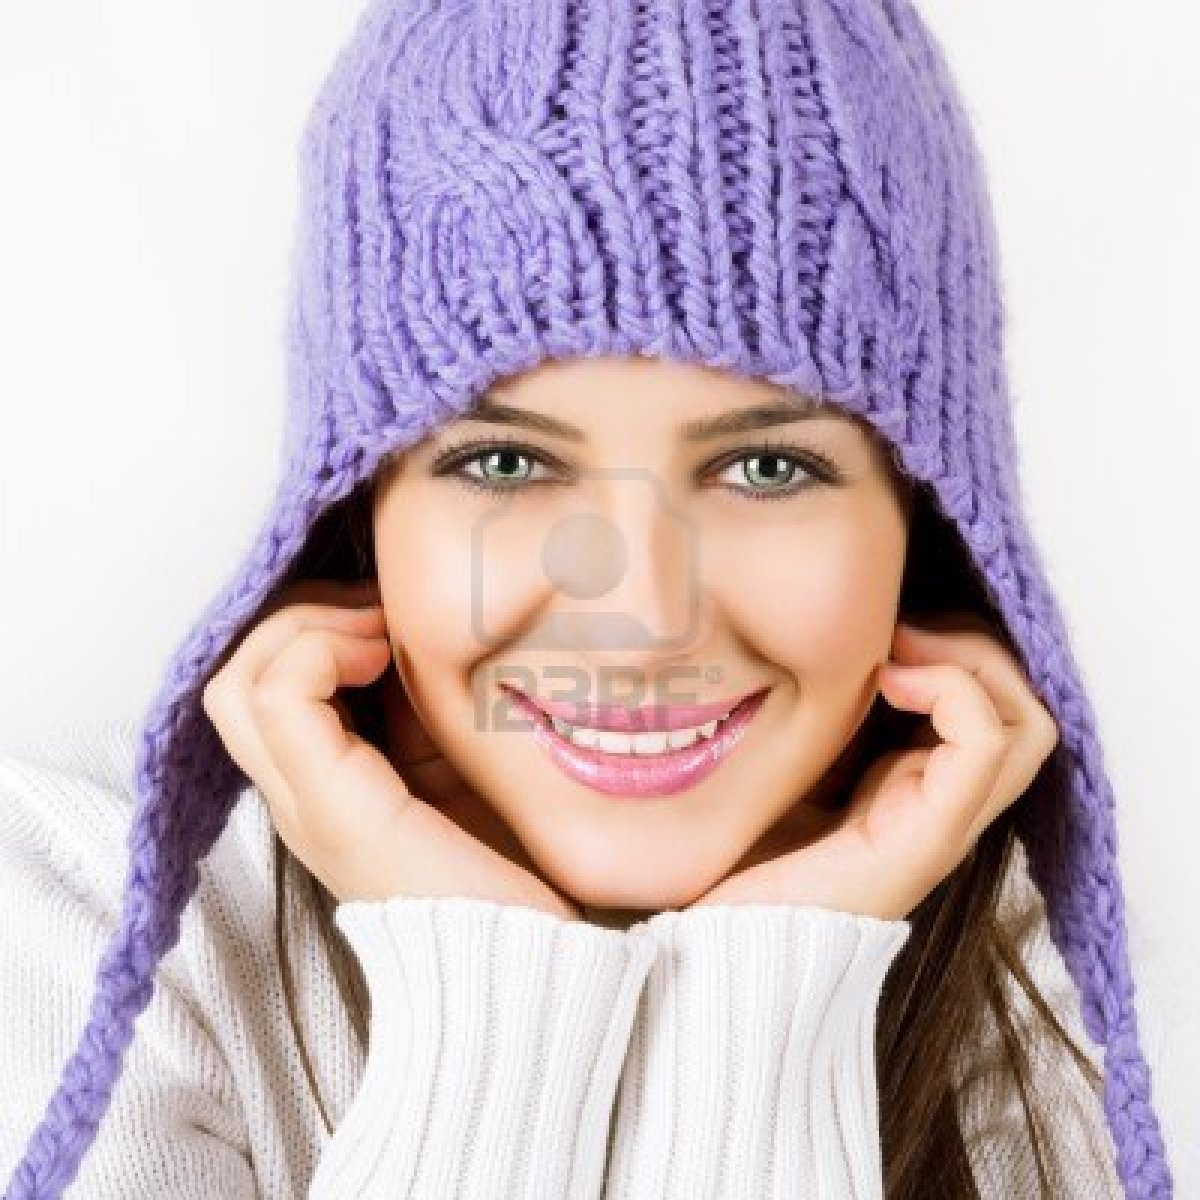 Tips for skin care at 35